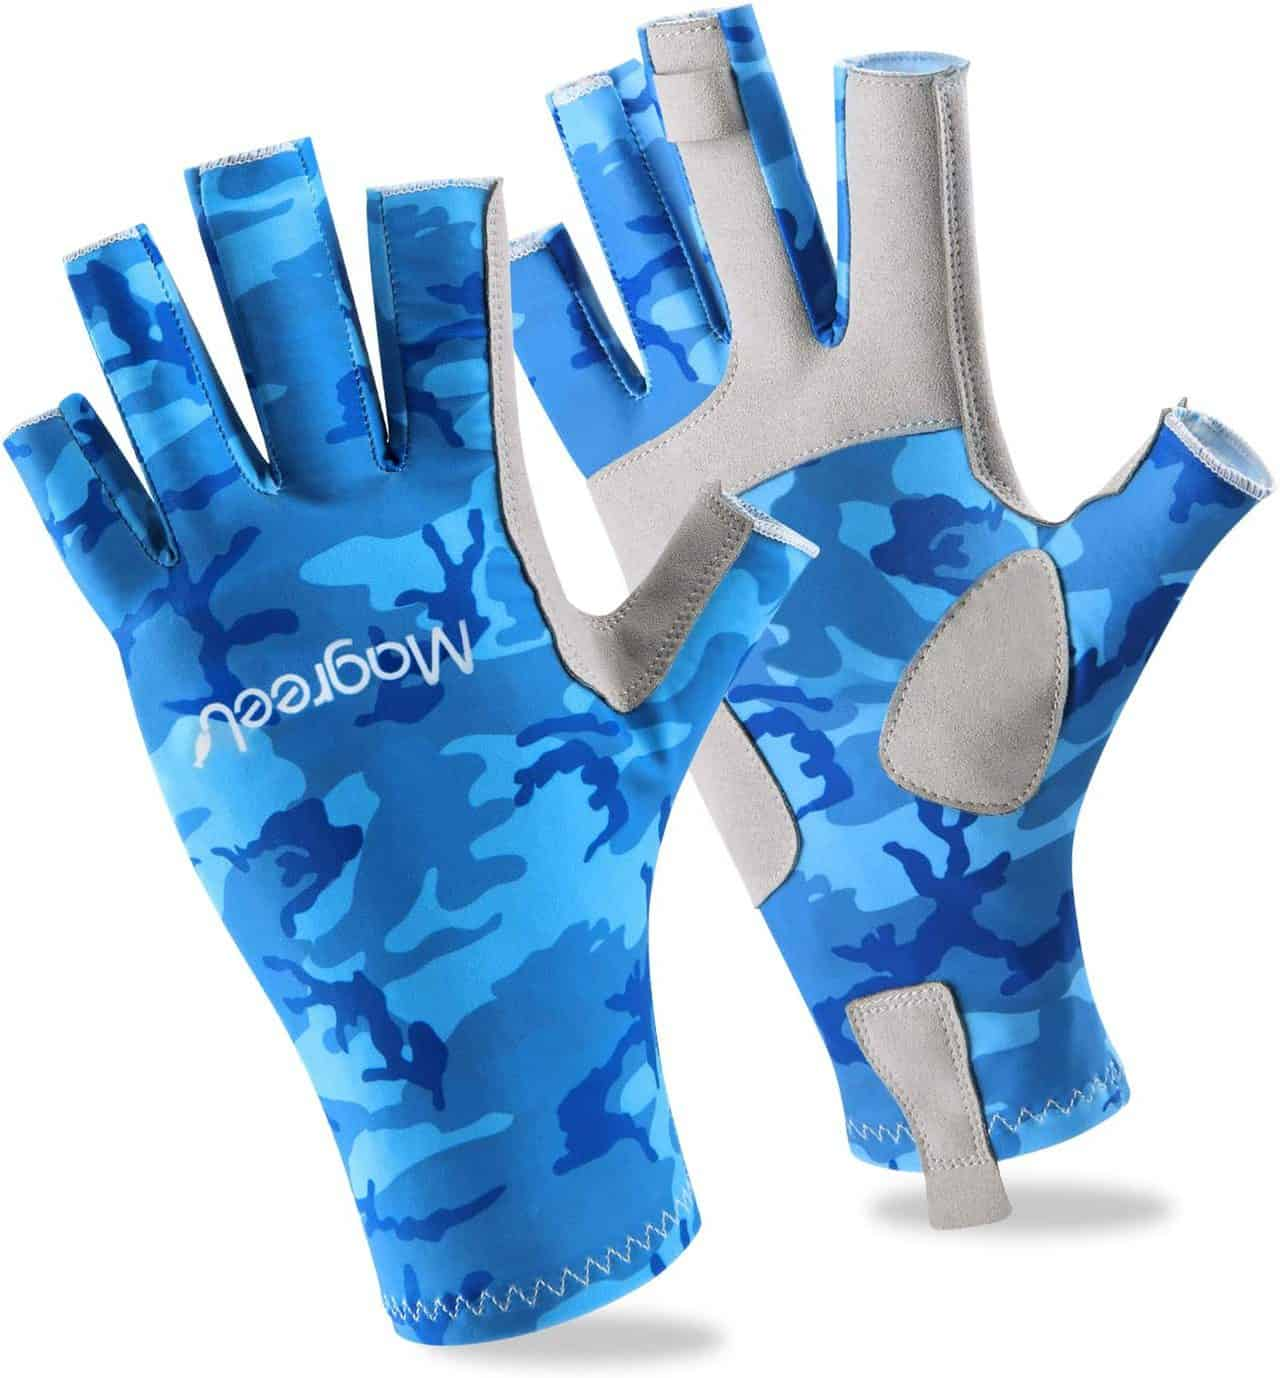 Fishing Gloves for Men and Women by Magreel